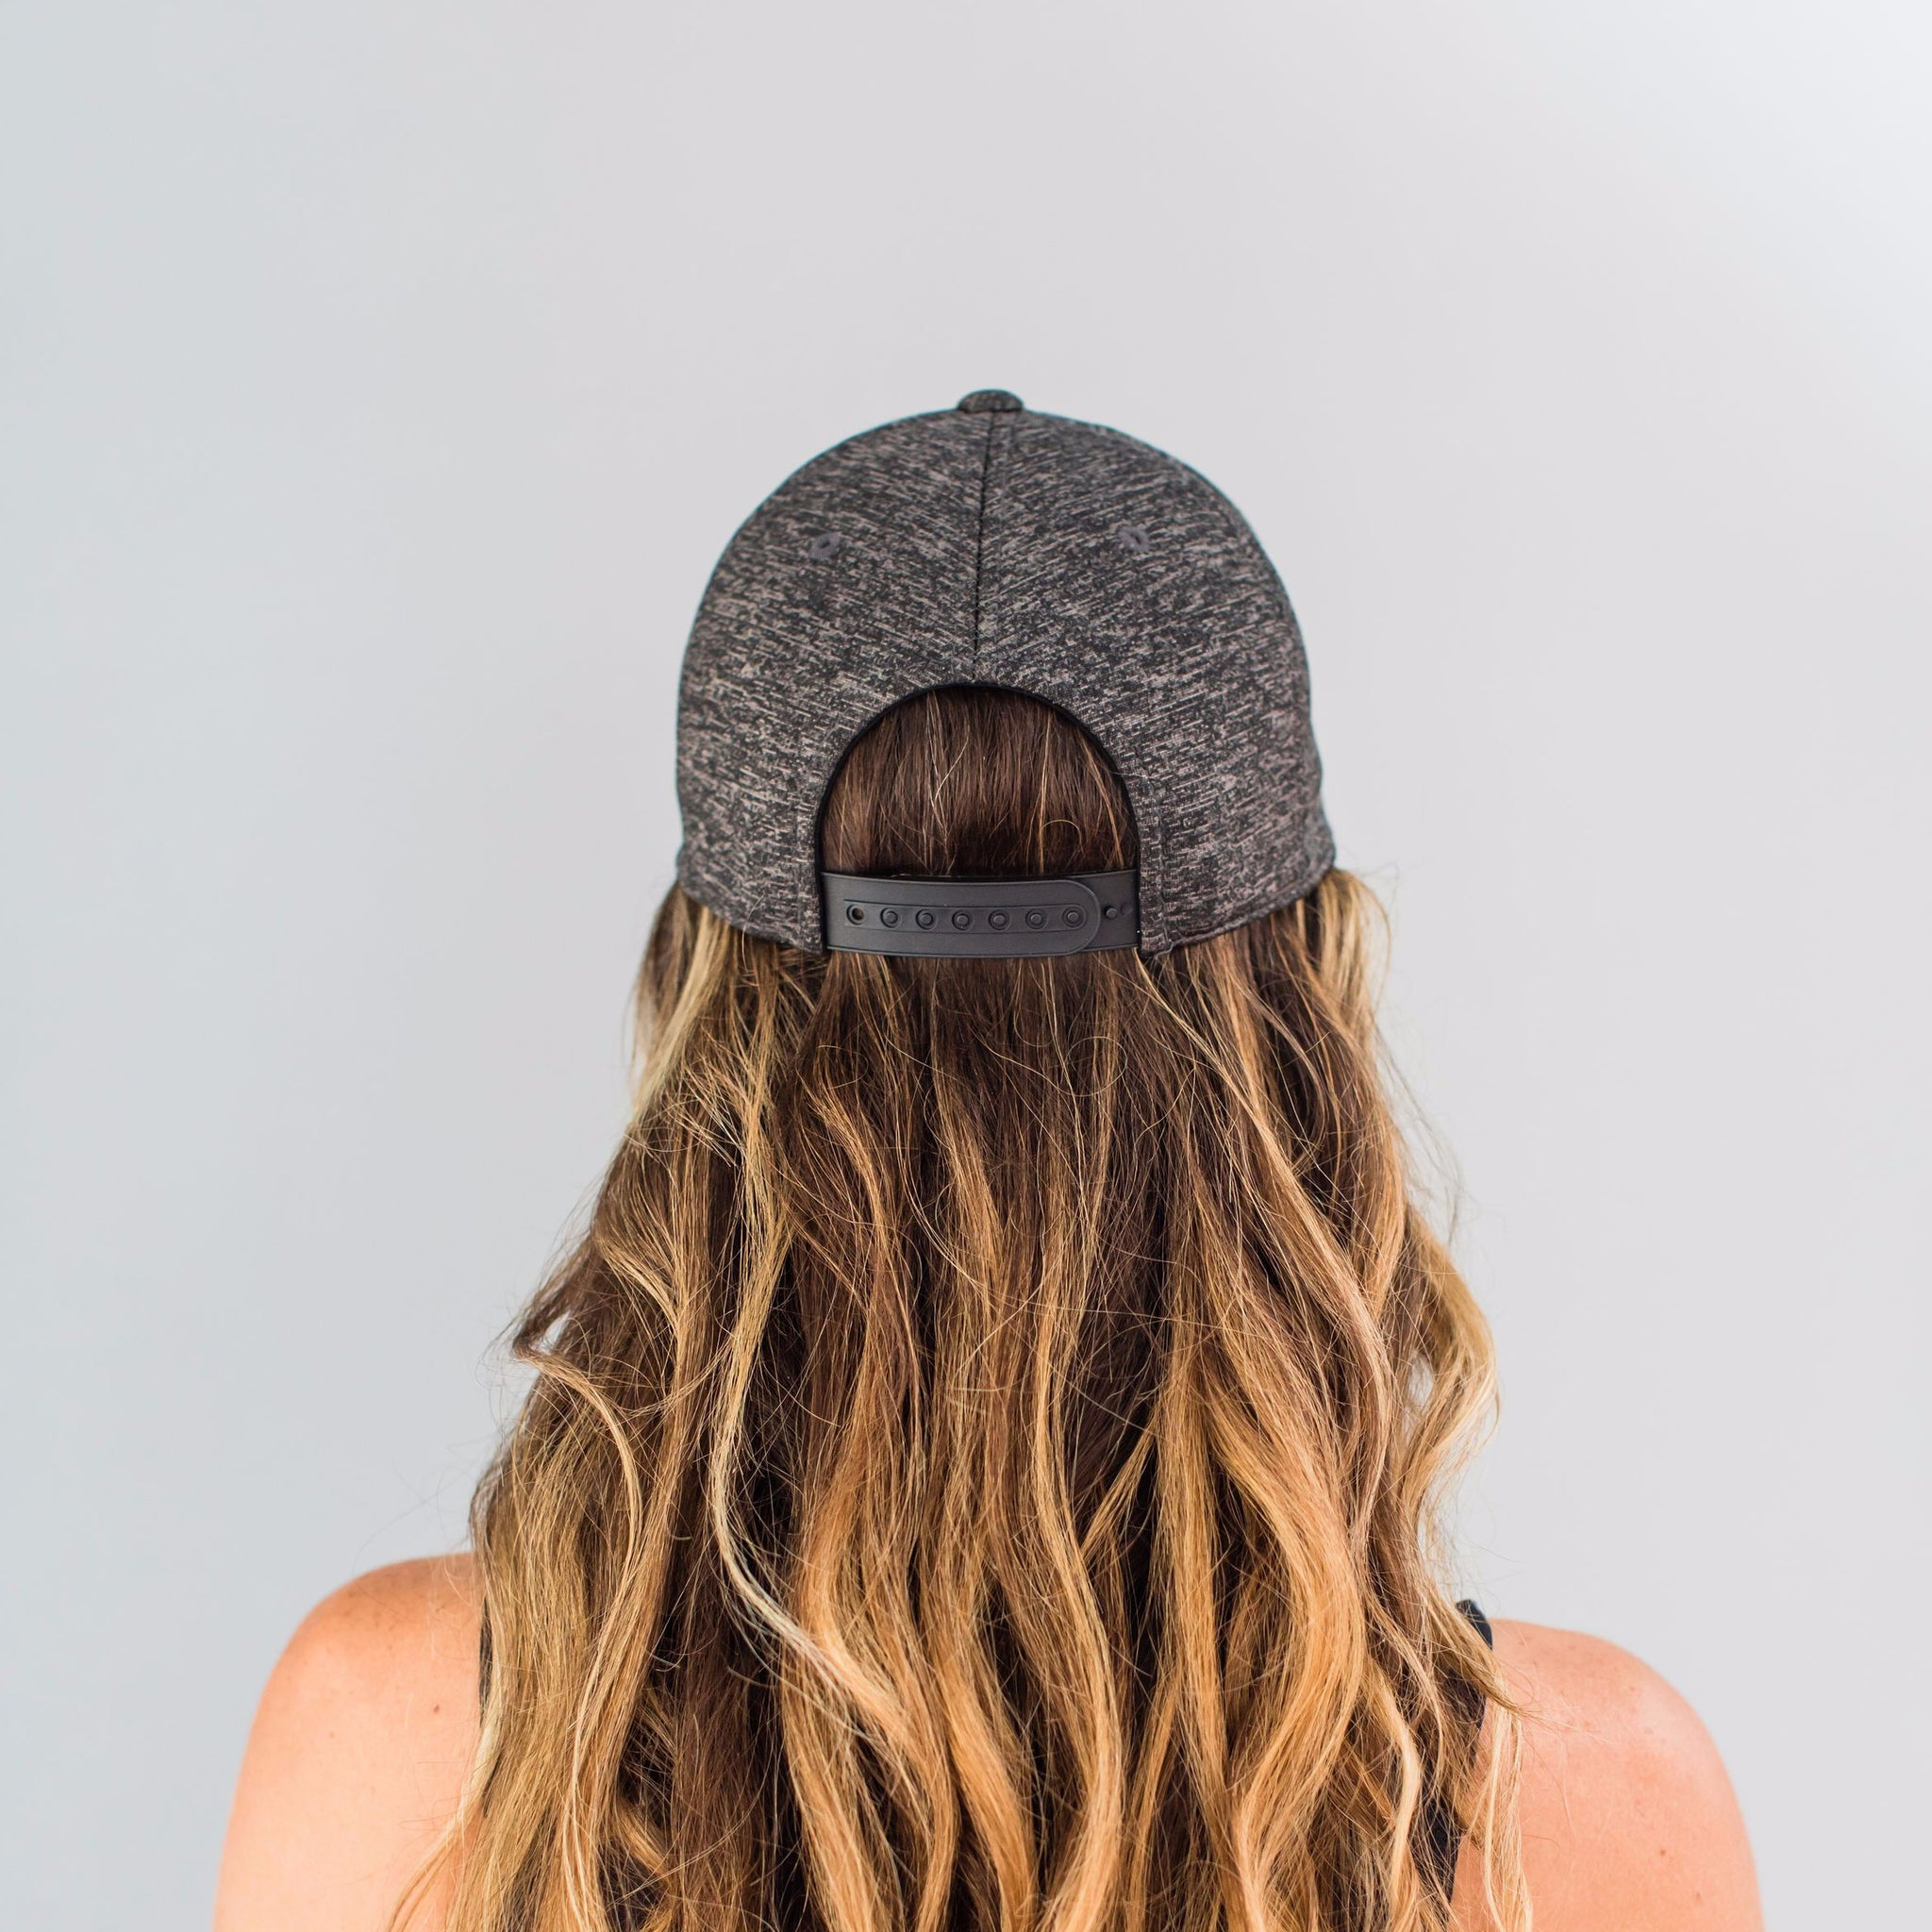 Structured, Sport Cap - Heather Grey